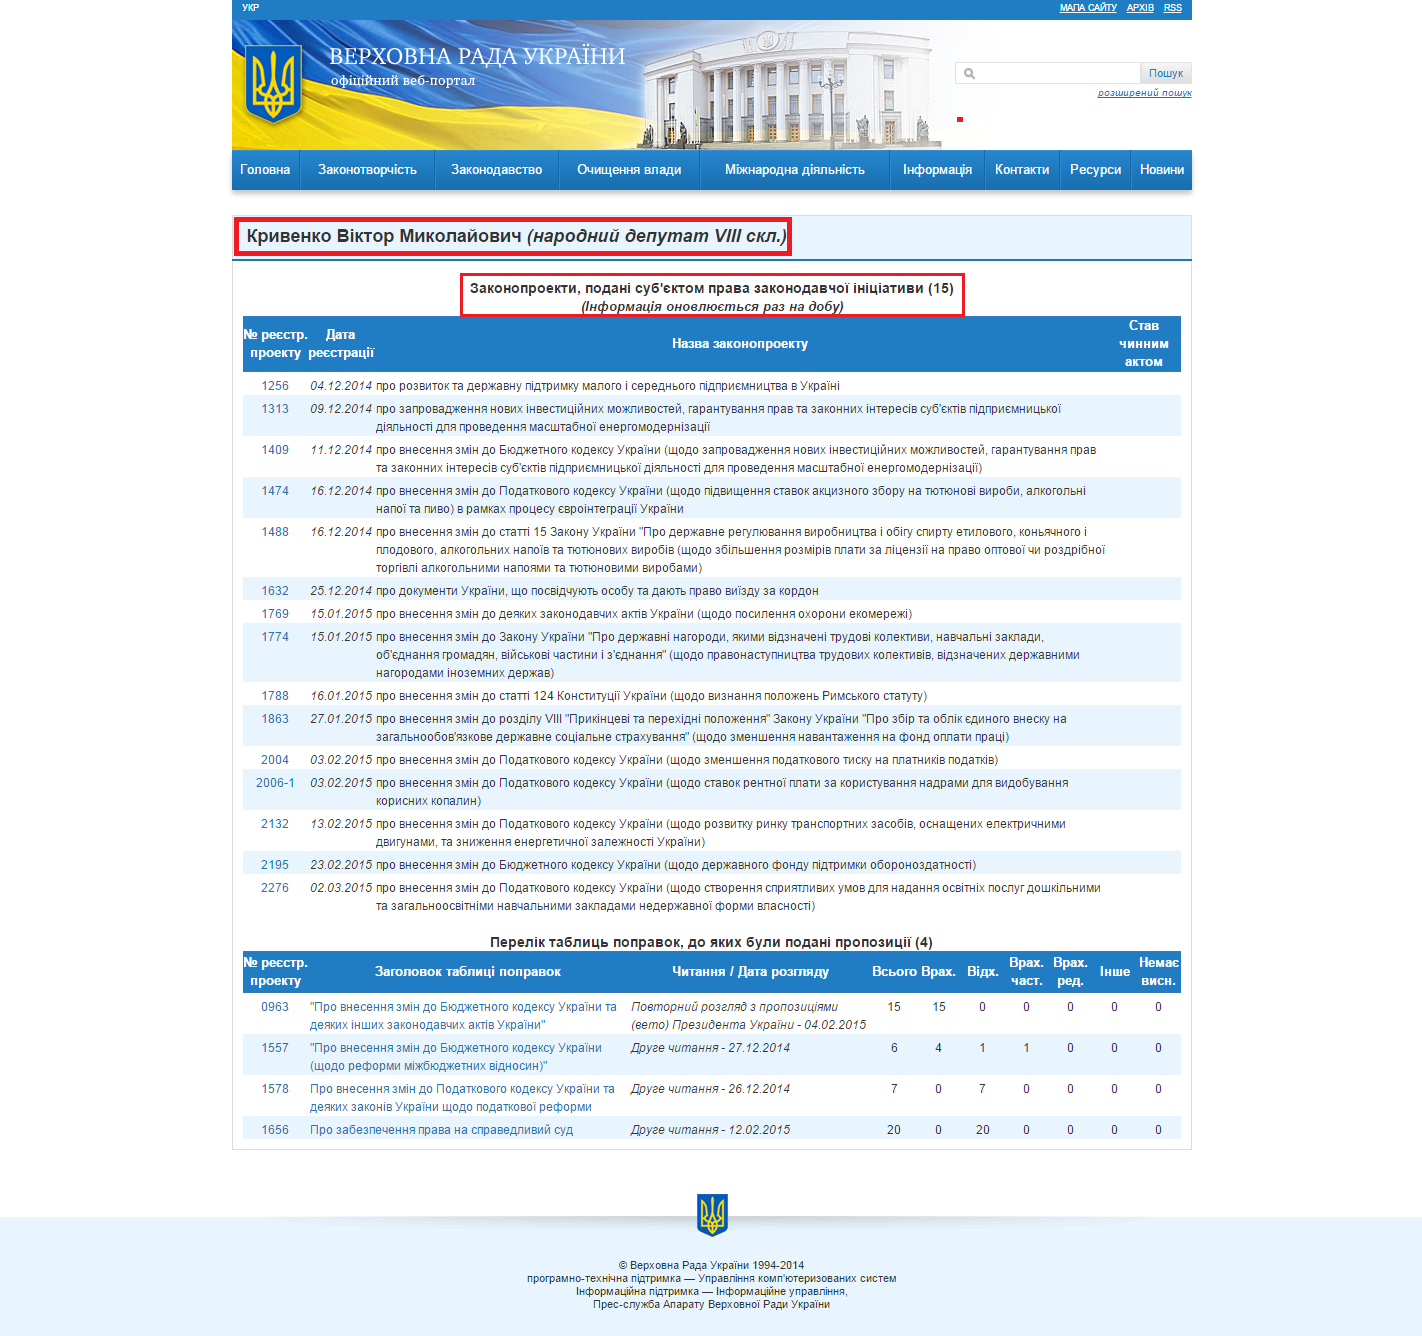 http://w1.c1.rada.gov.ua/pls/pt2/reports.dep2?PERSON=18005&SKL=9